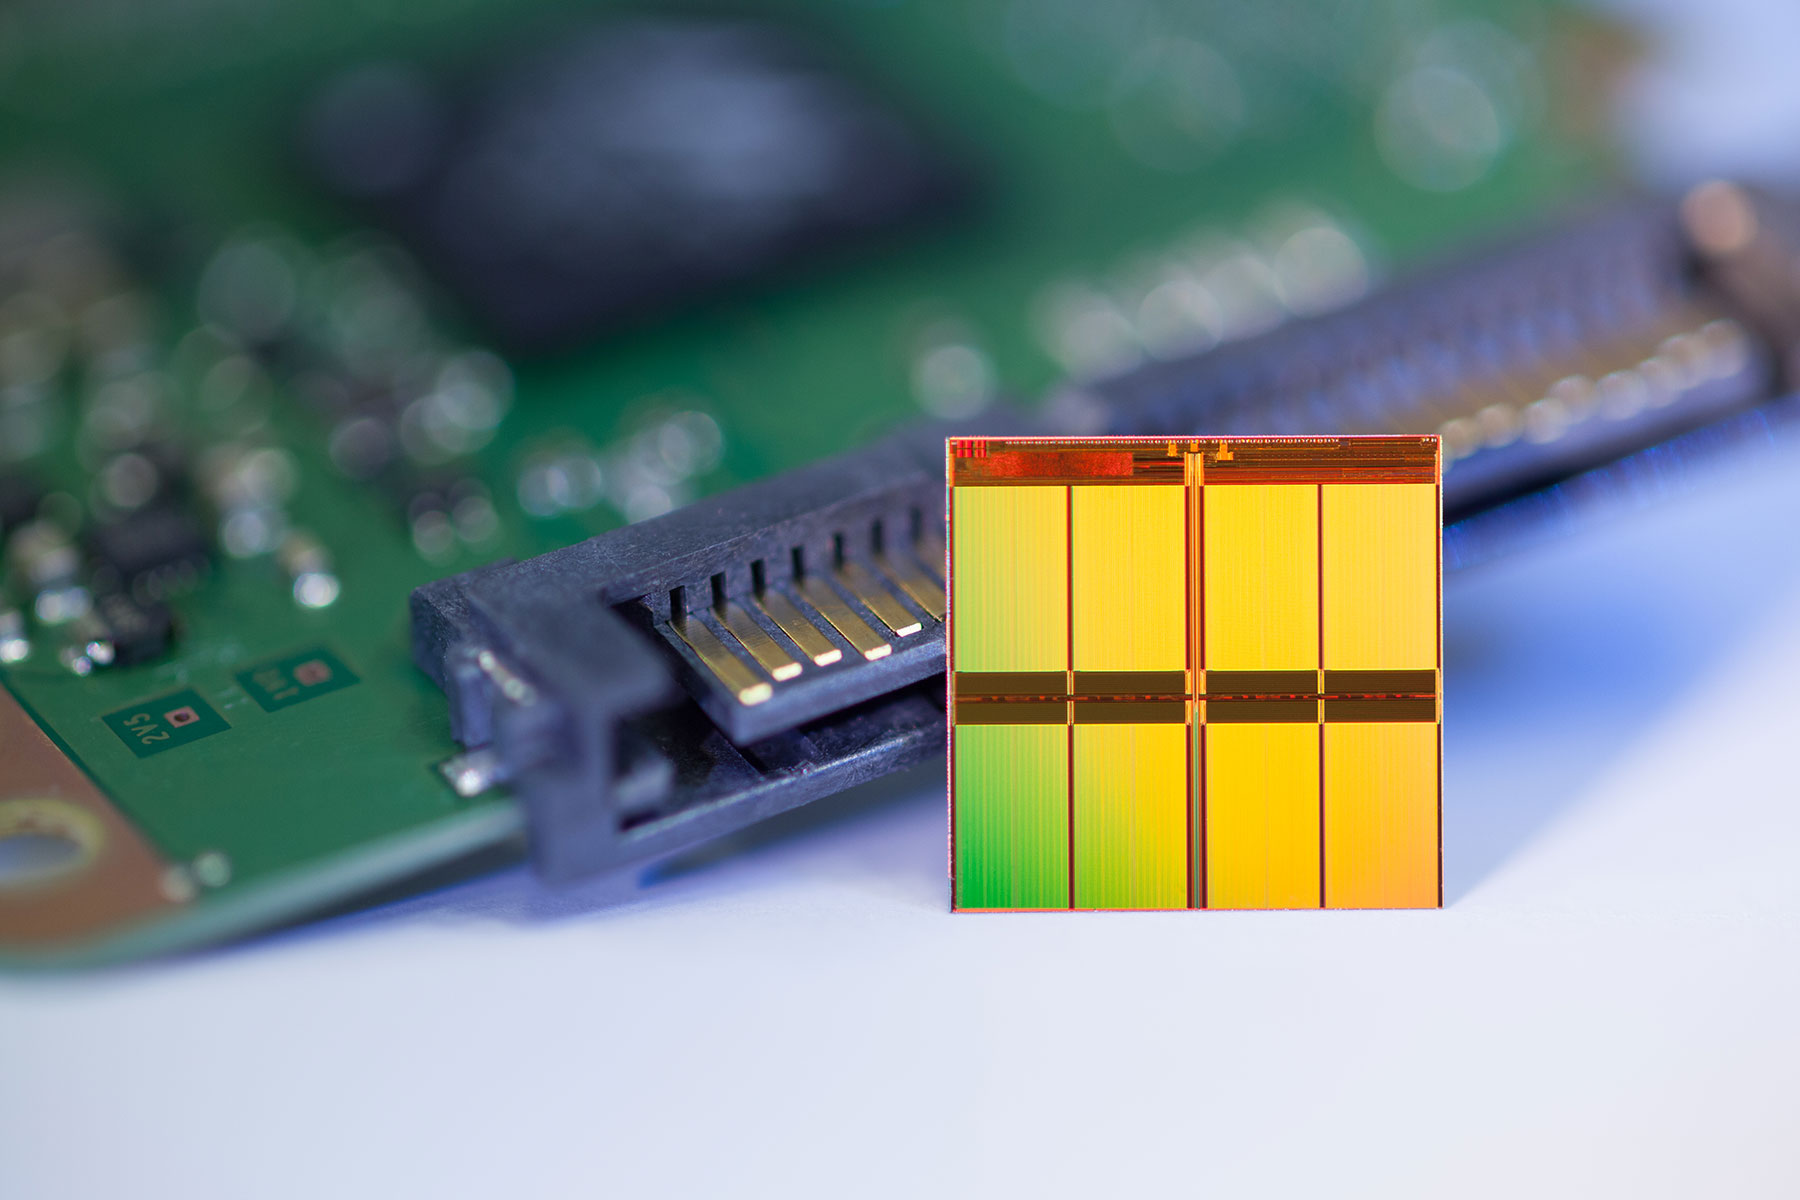 Micron's 16nm MLC NAND Flash memory chip